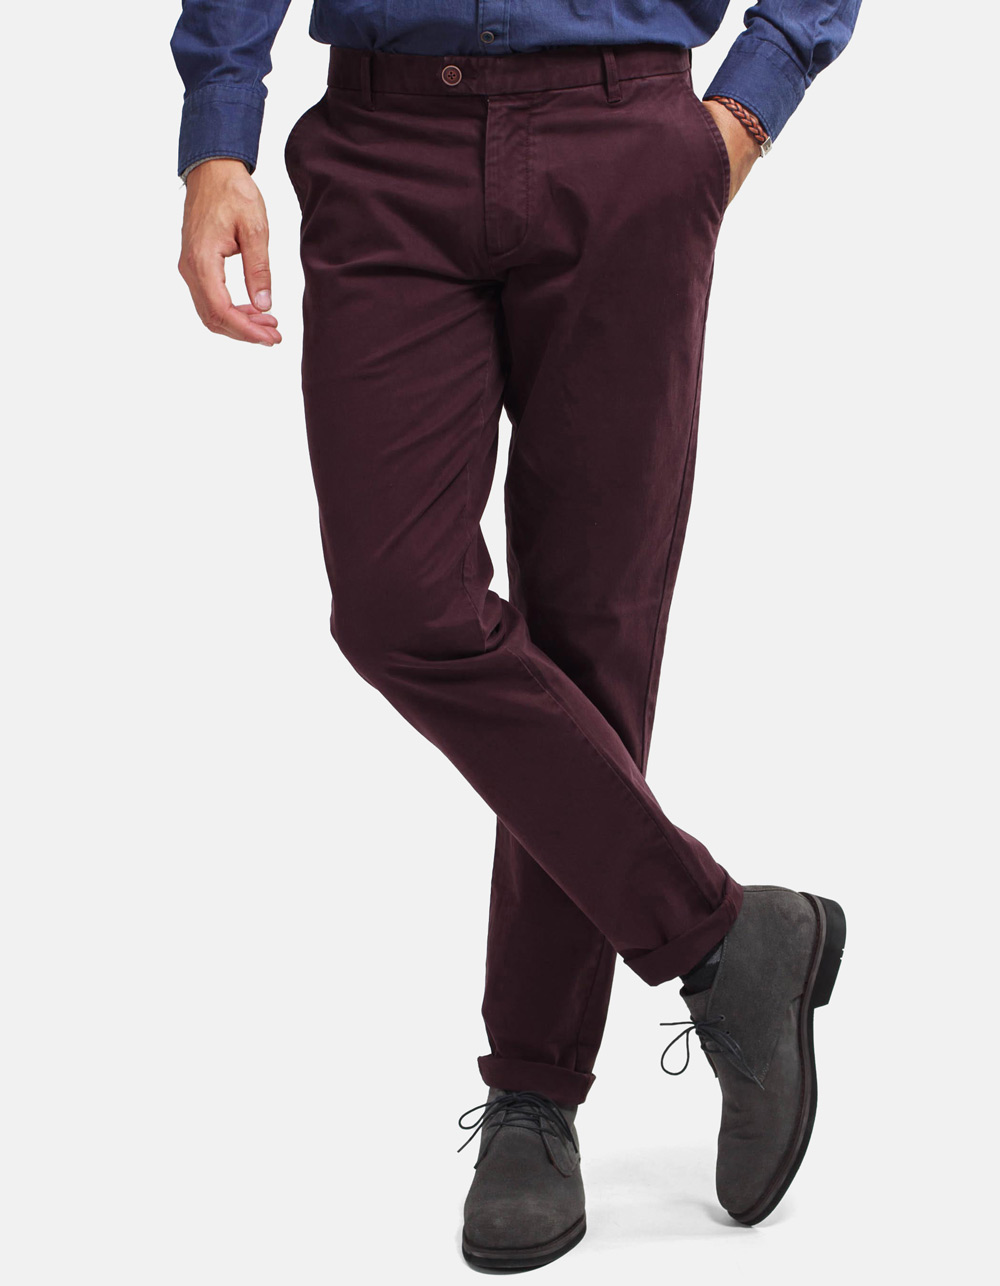 Burgundy chinos trousers